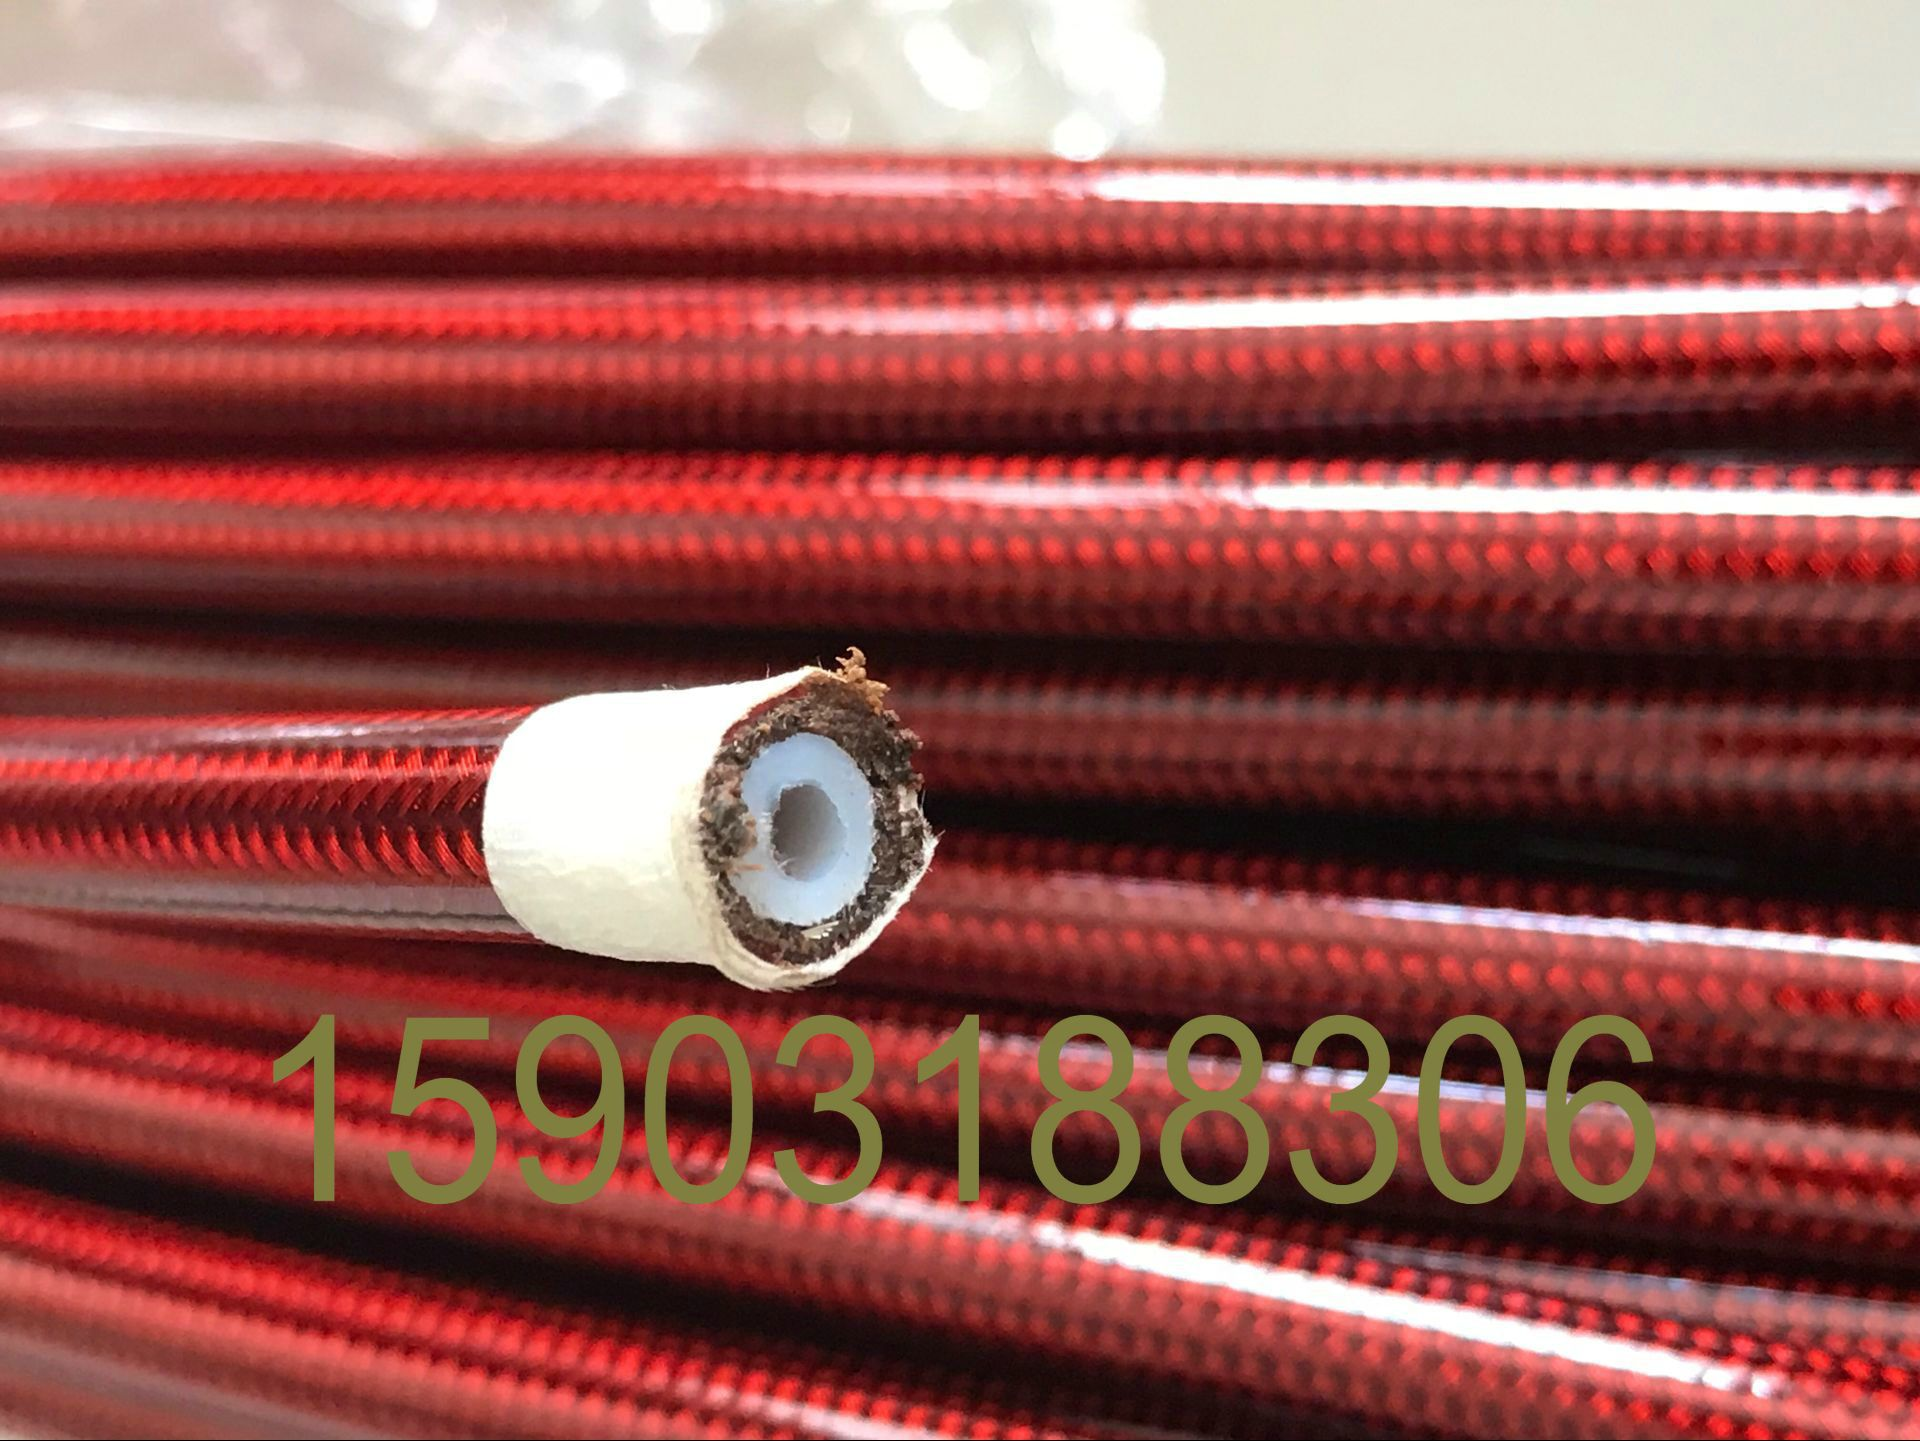 An3 Id 1 8 Braided Ptfe Brake Hose Motorcycle Teflon Line Pu Coating 5m Red Black Blue And Clear Black And Red Aliexpress Engagement Rings